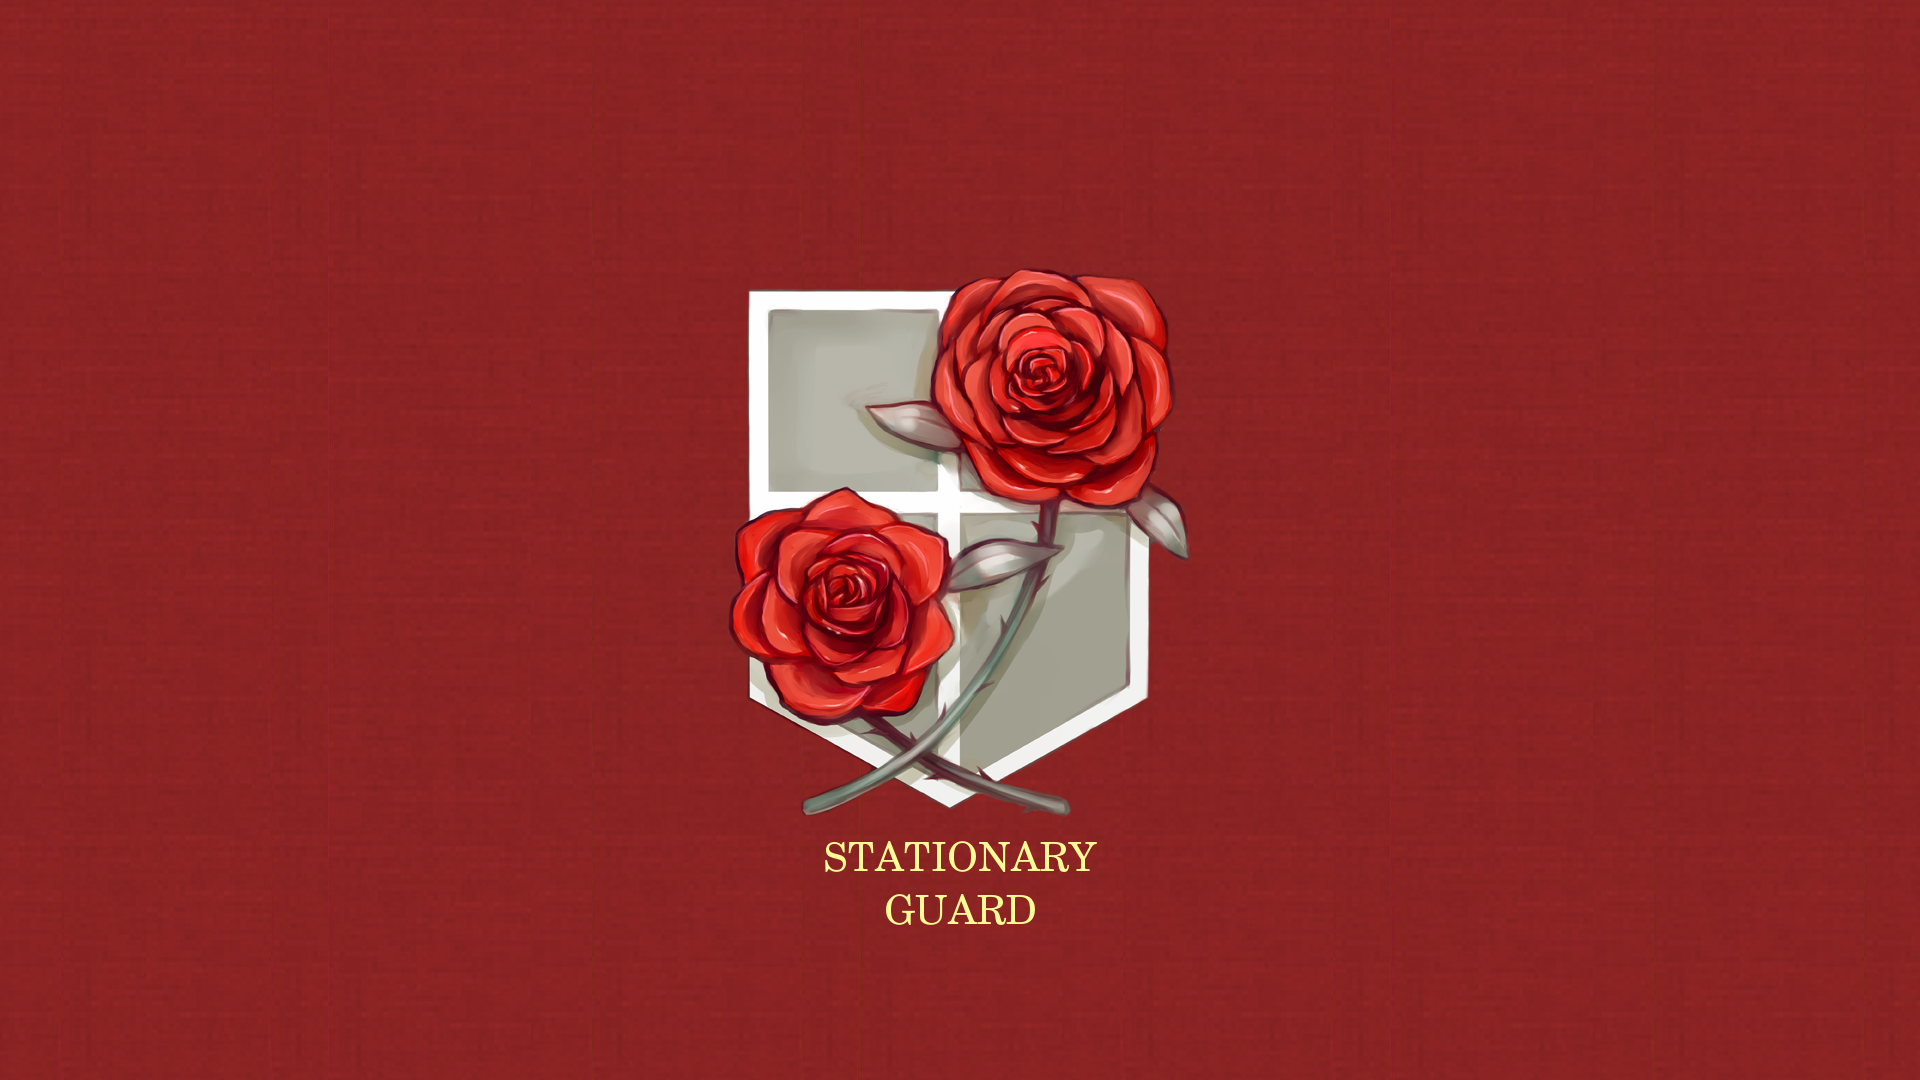 staionary guard emblem attack-#14